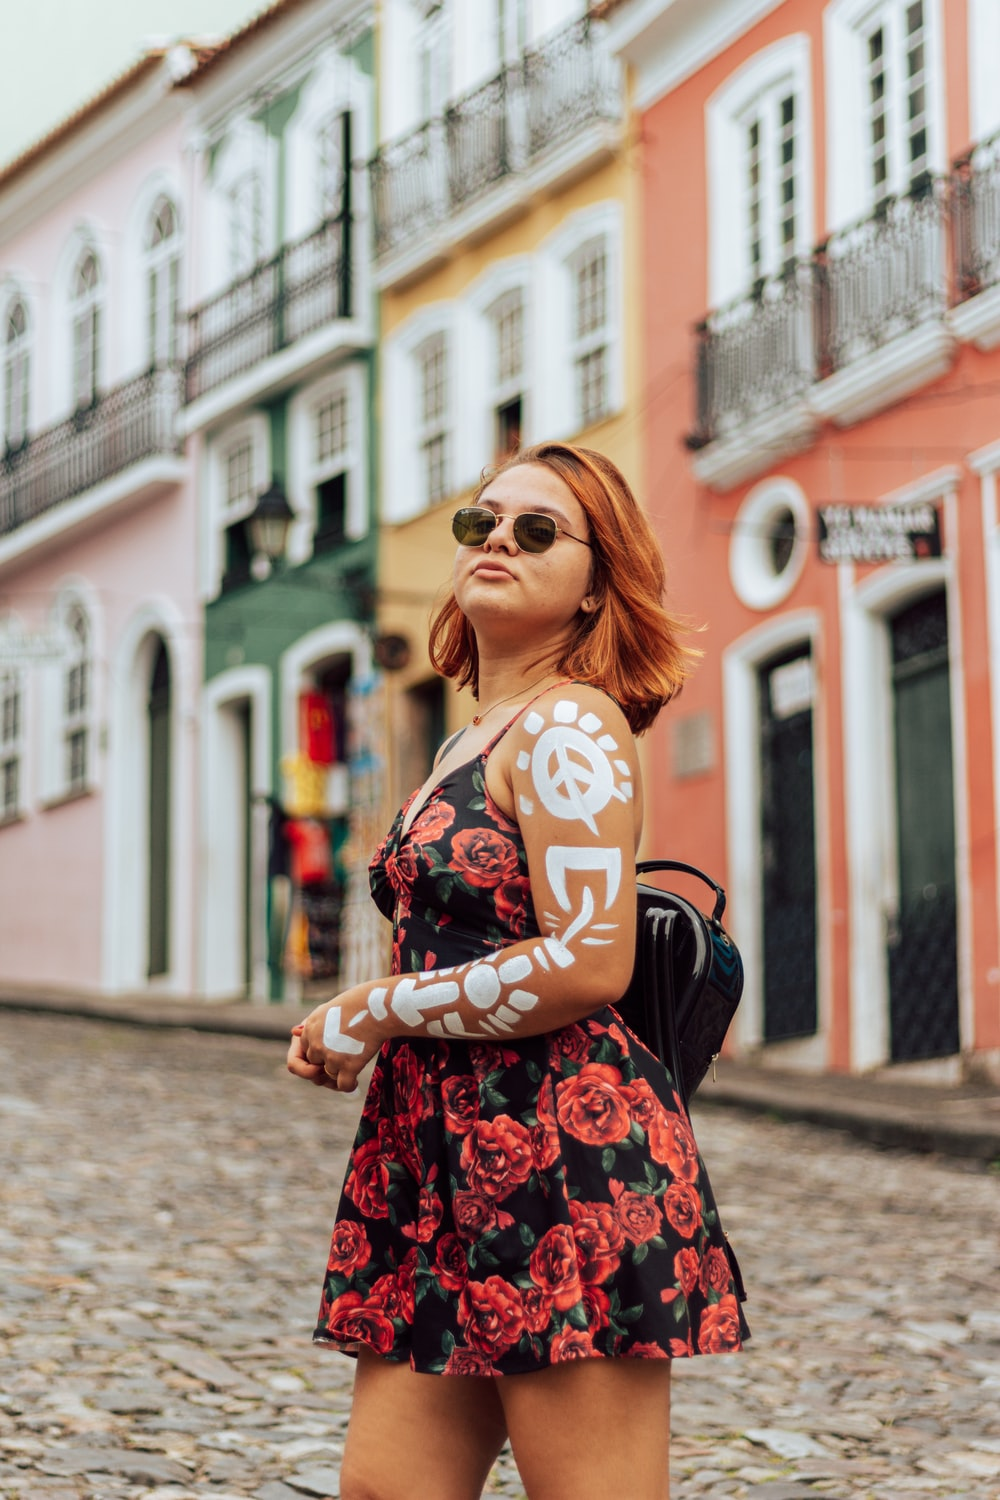 woman in black and red floral dress wearing black sunglasses standing on street during daytime